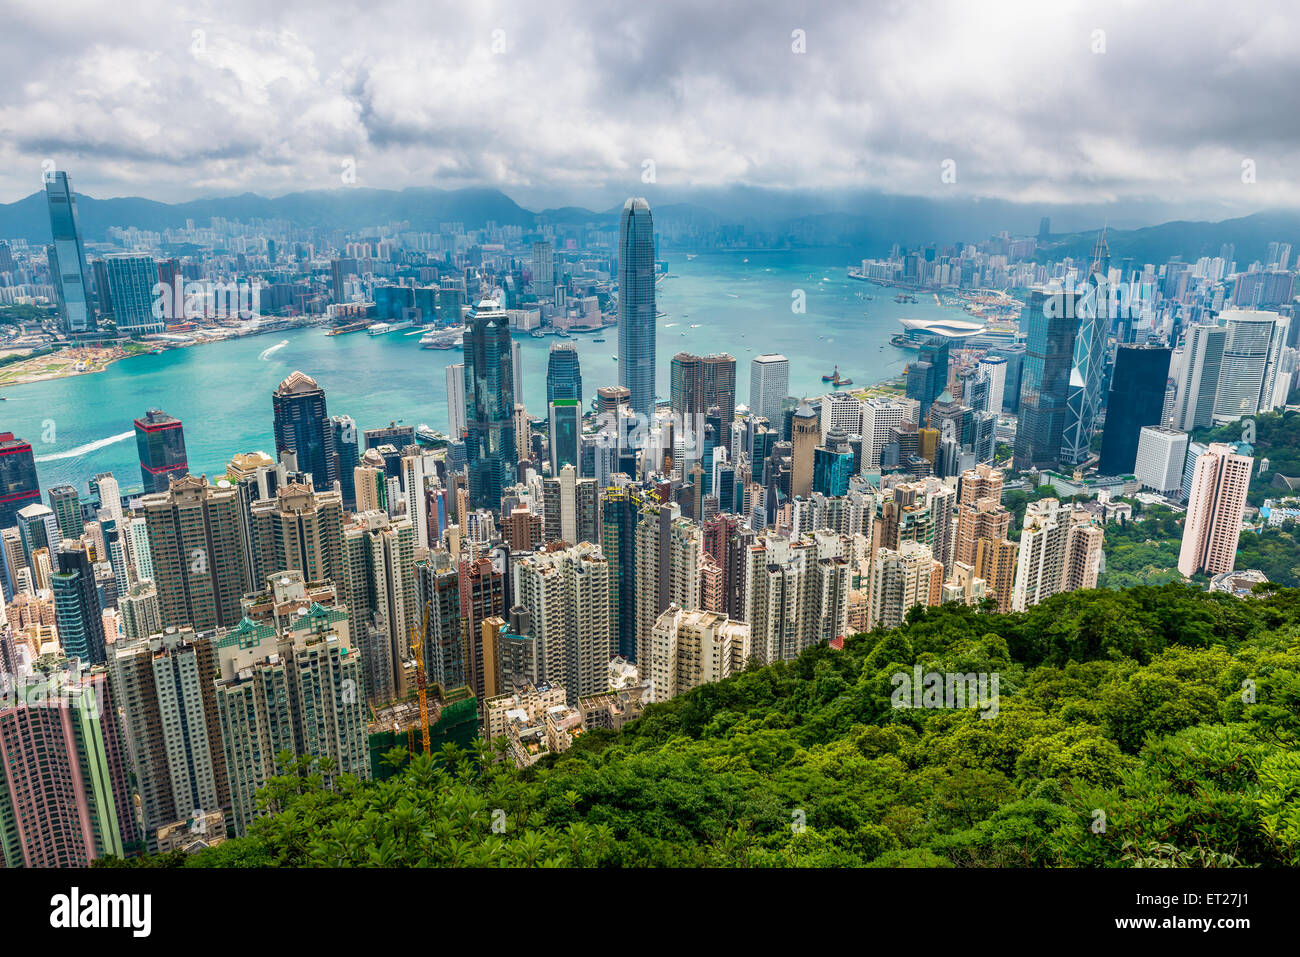 The view of Hong Kong from Victoria Peak. - Stock Image